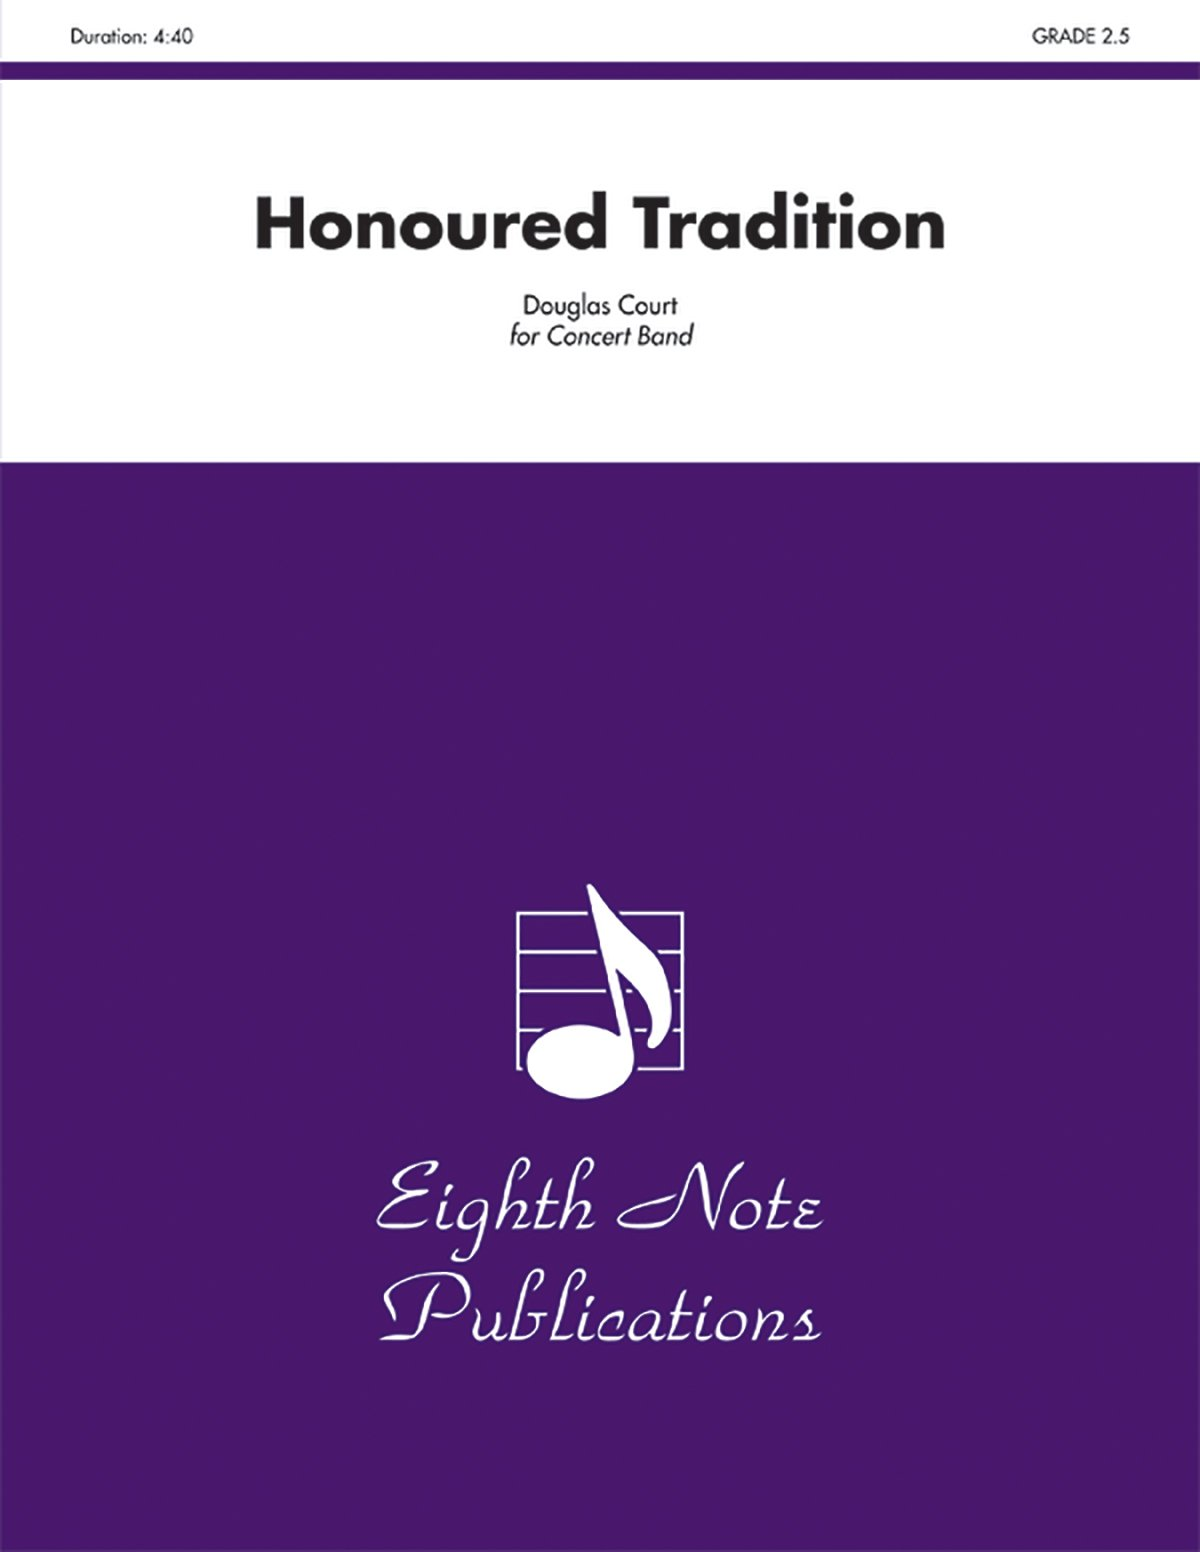 Download Honoured Tradition: Conductor Score (Eighth Note Publications) PDF